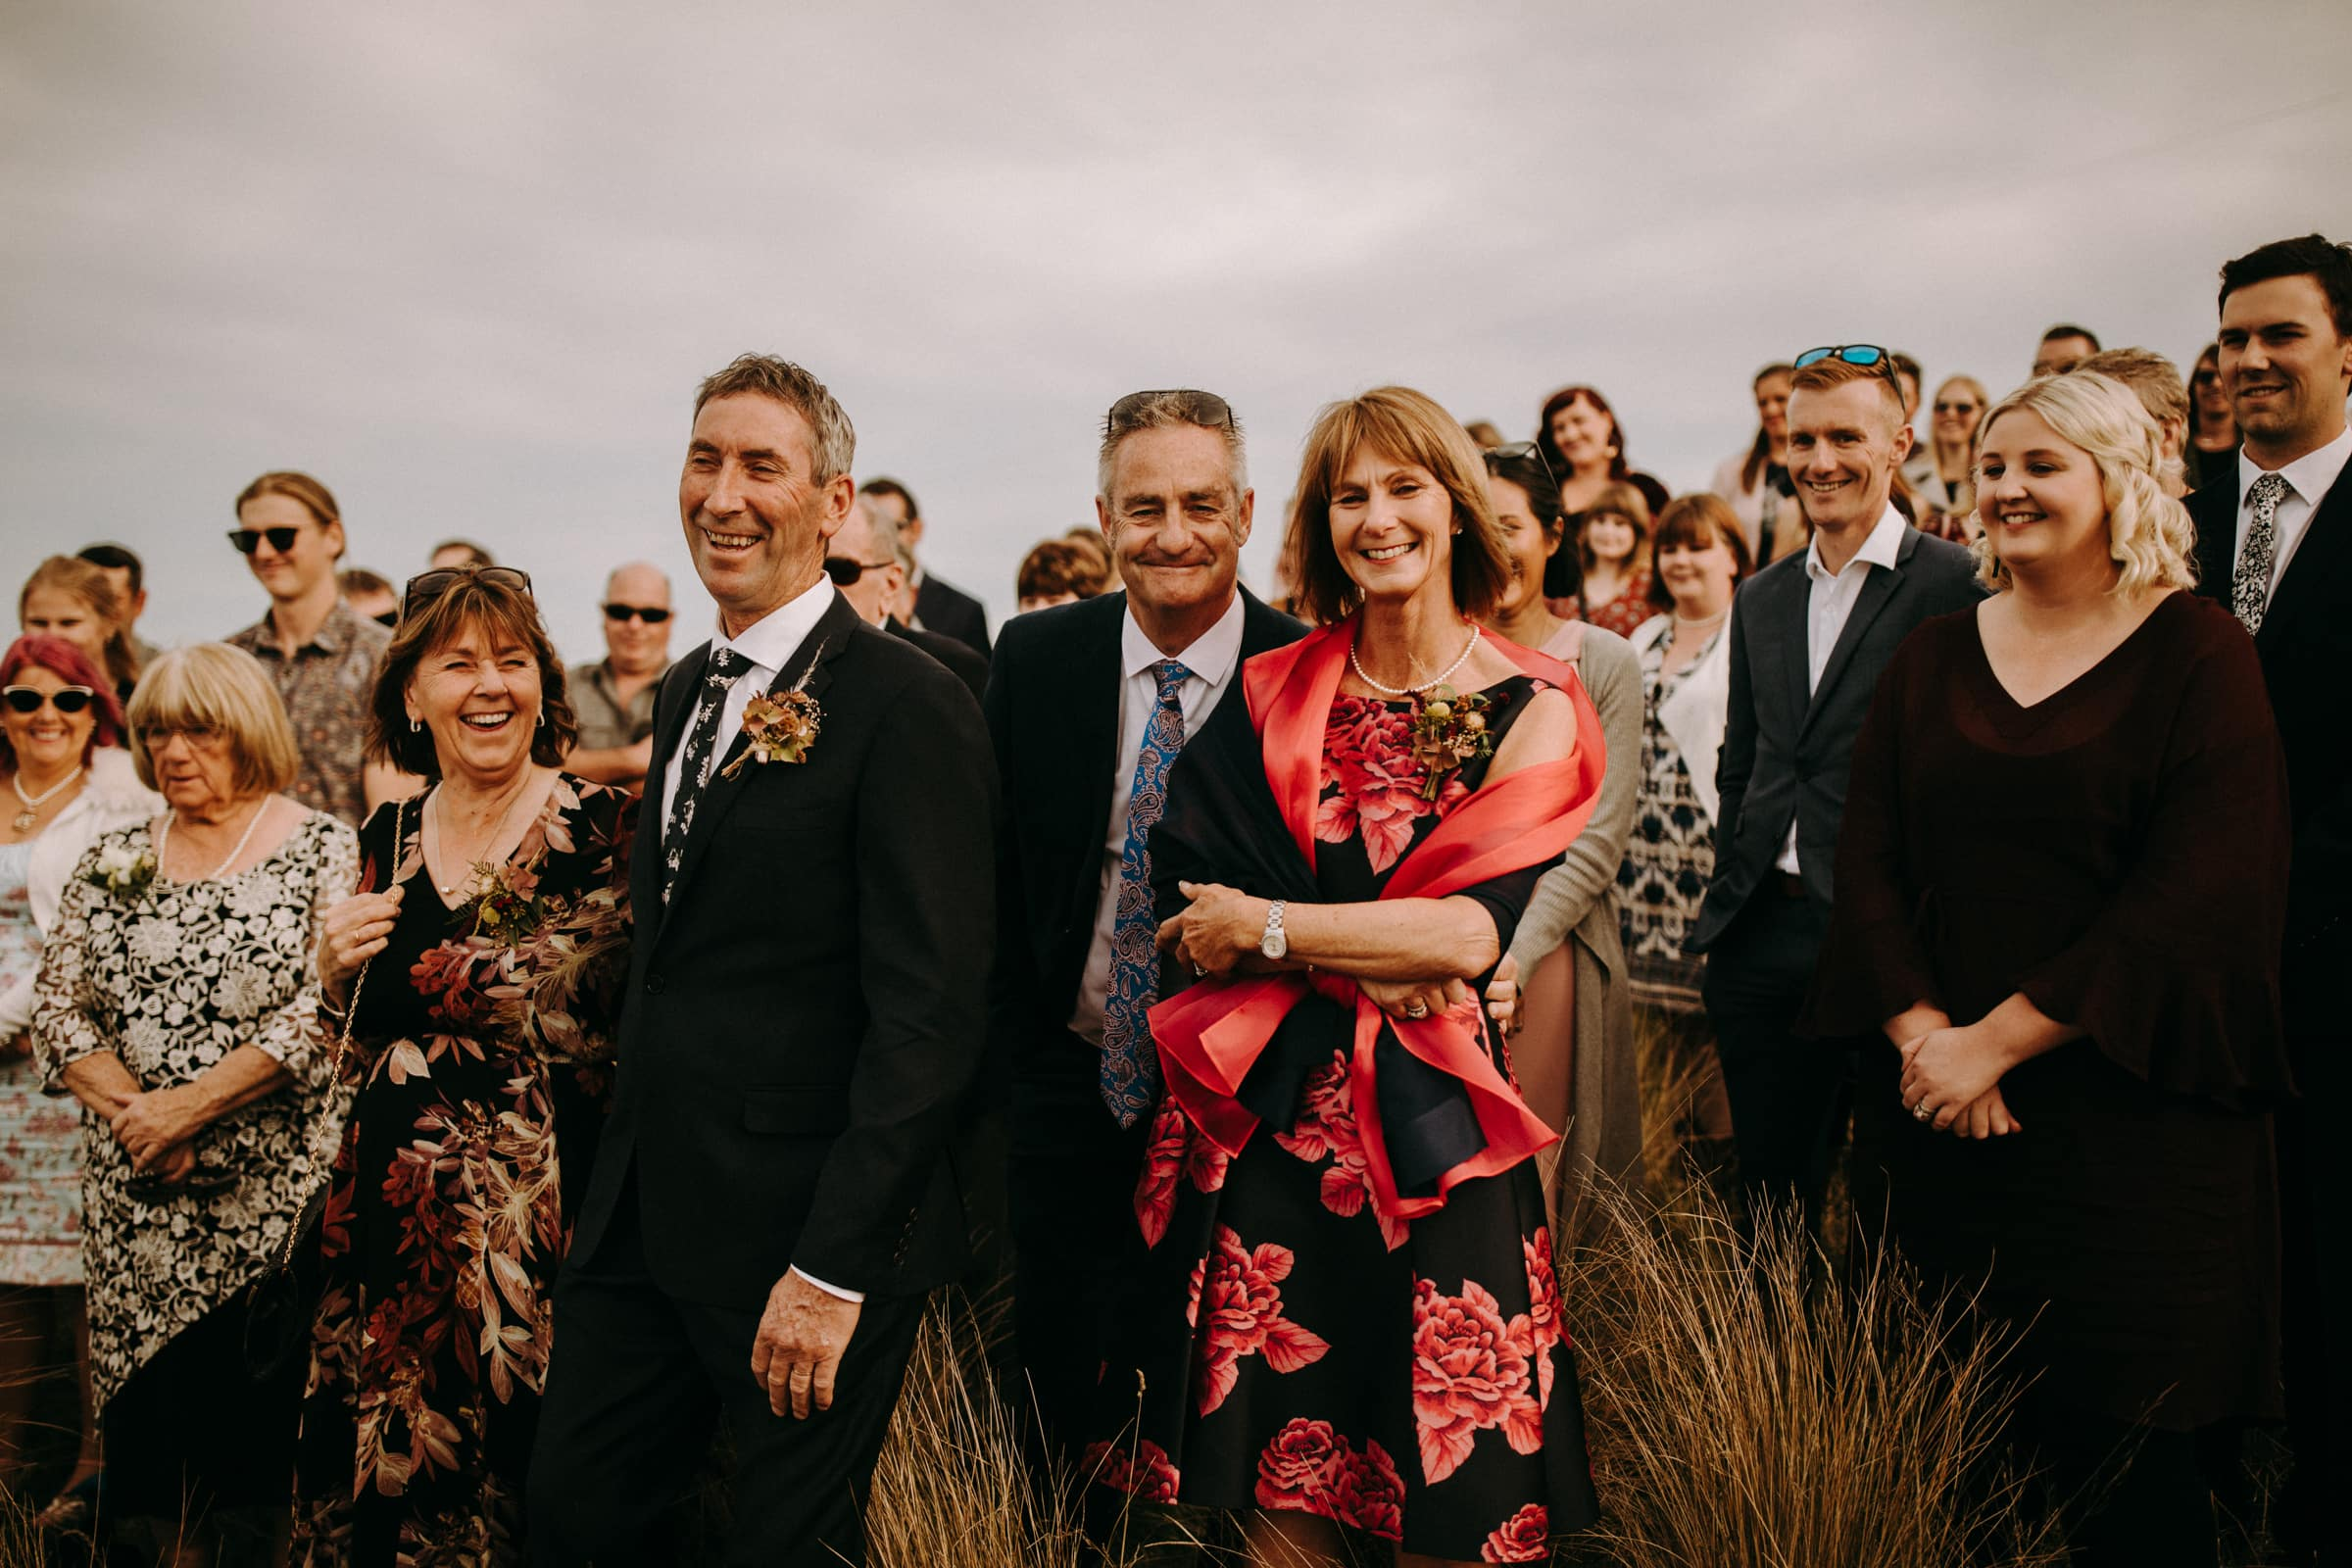 Wedding guests are standing in a meadow and are smiling.